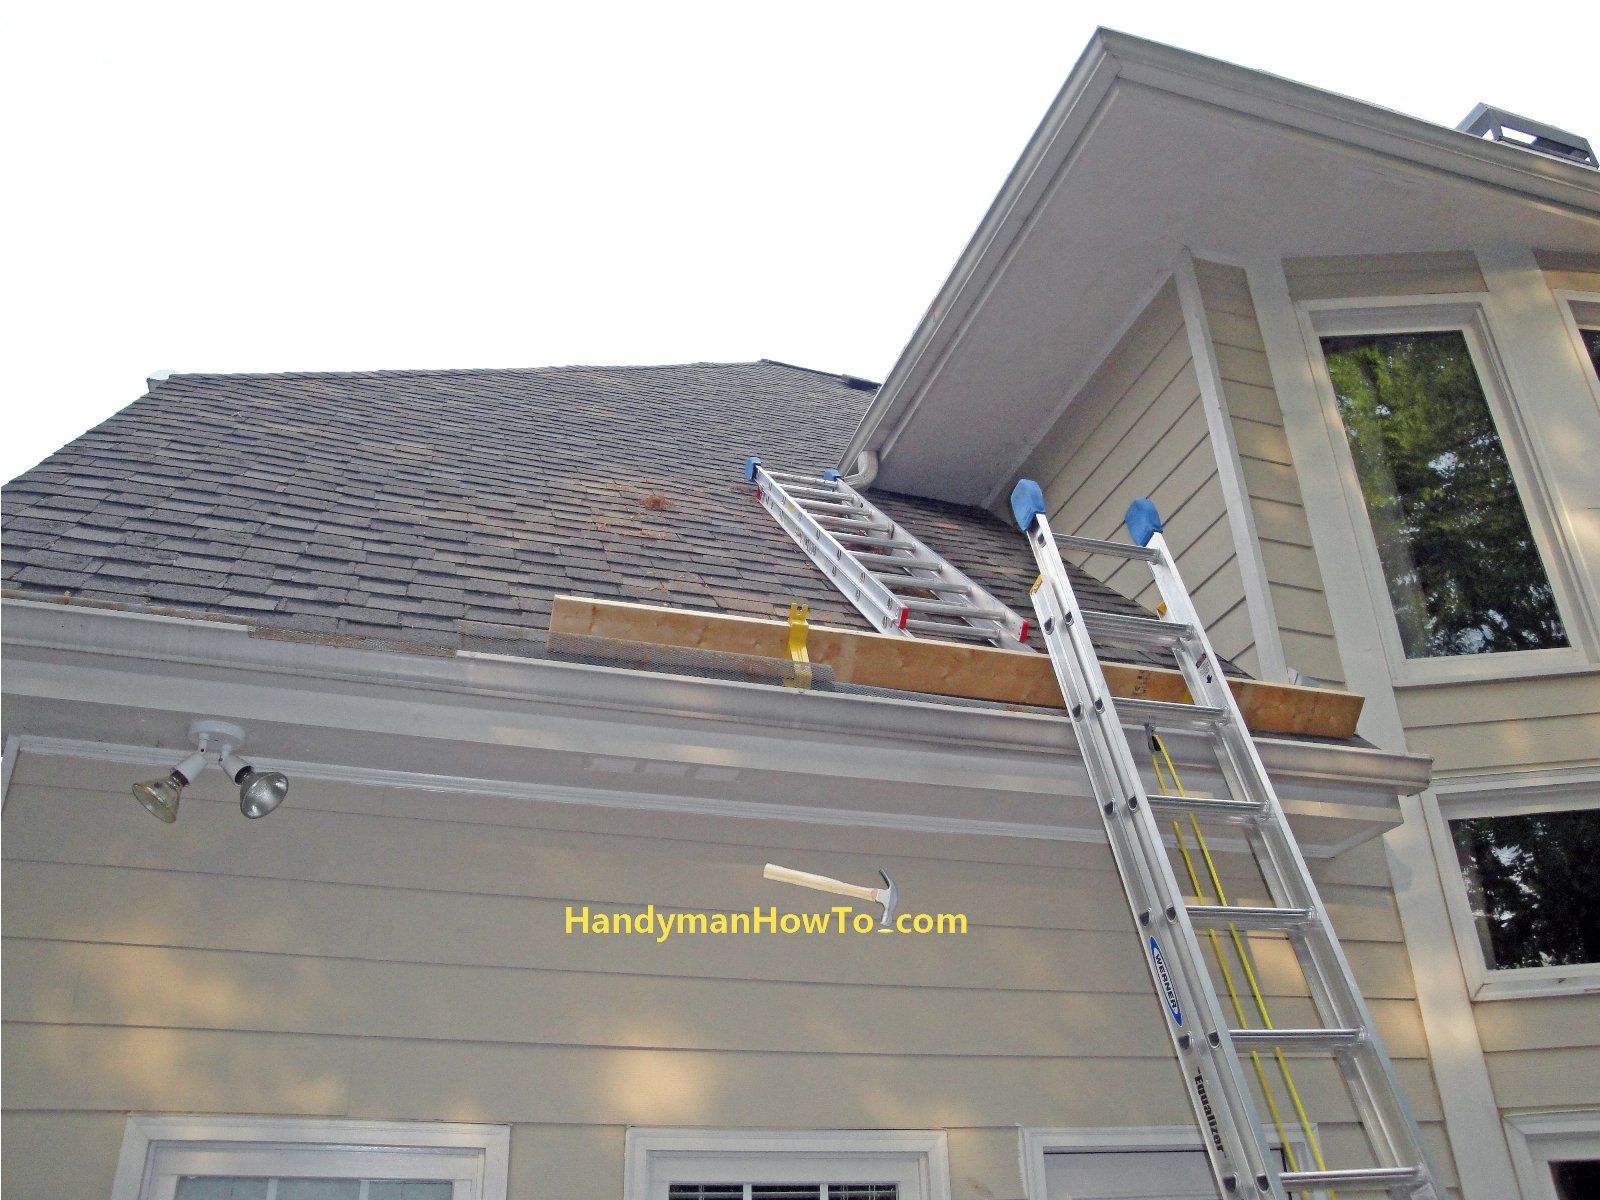 Roof Brackets And Ladders For Rotted Soffit And Fascia Repair Roof Repair Diy Roof Repair Home Repairs